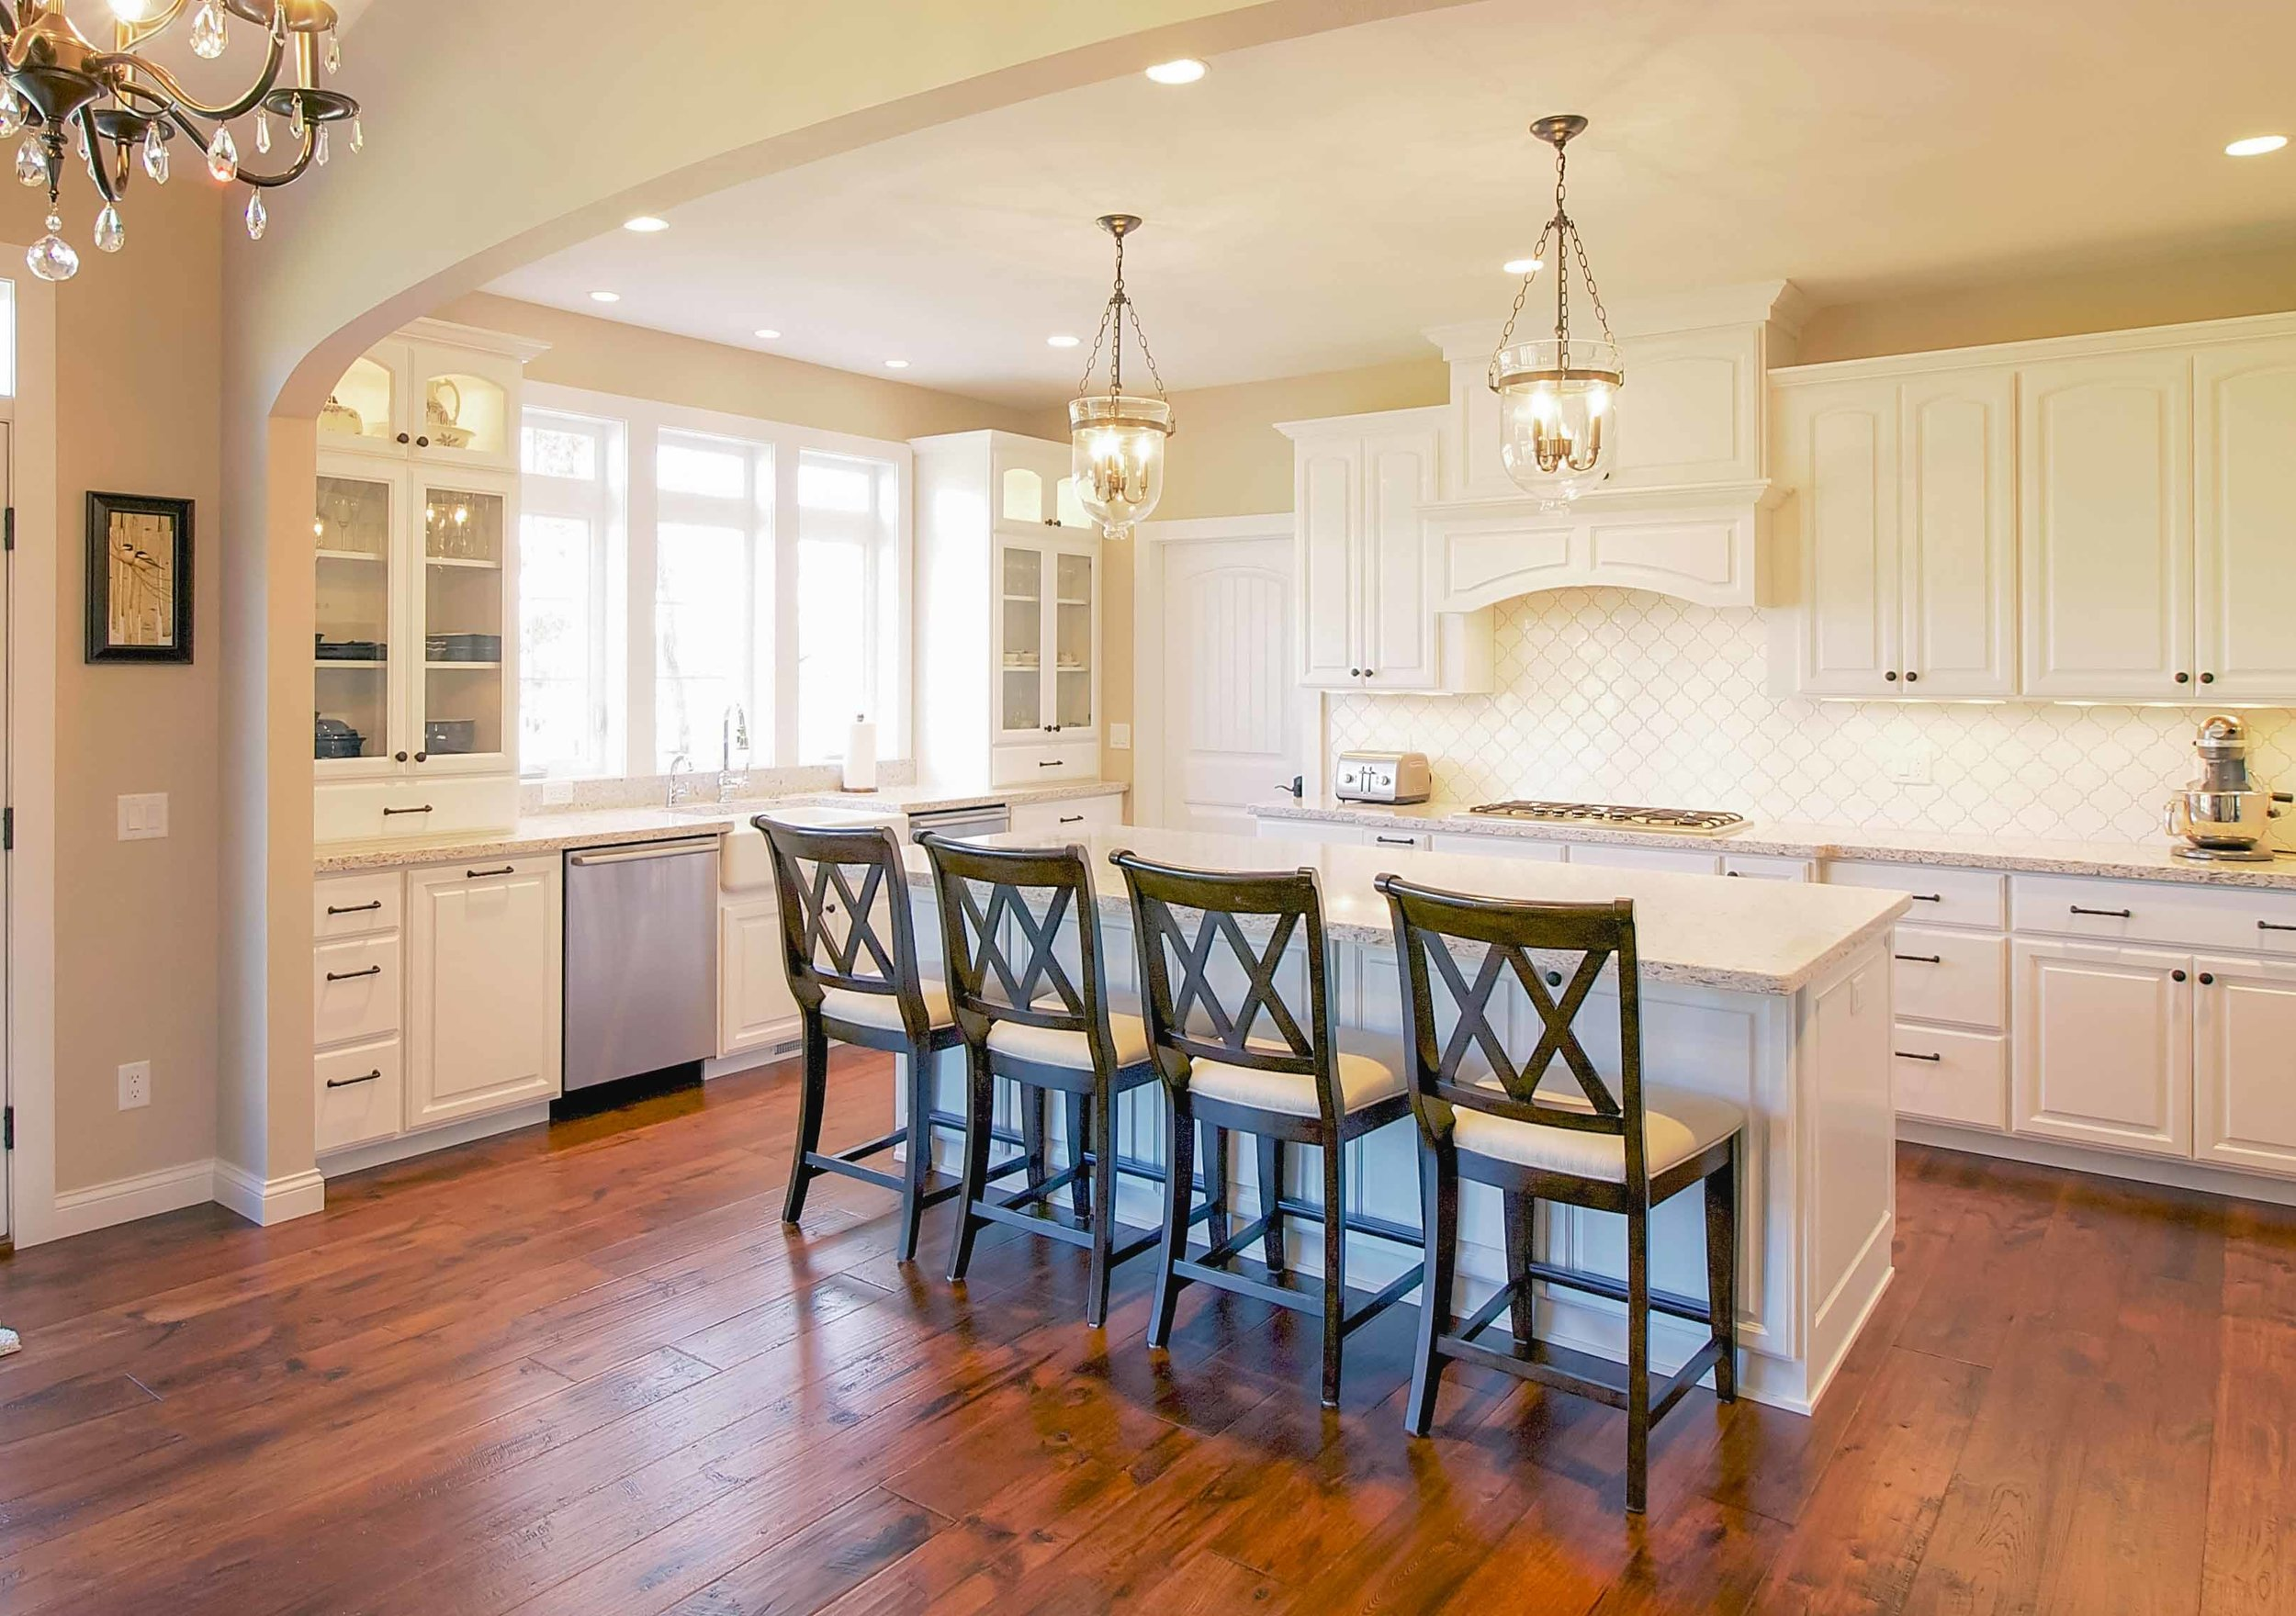 - The quiet, properly sized range hood in this kitchen is fully concealed in cabinetry.